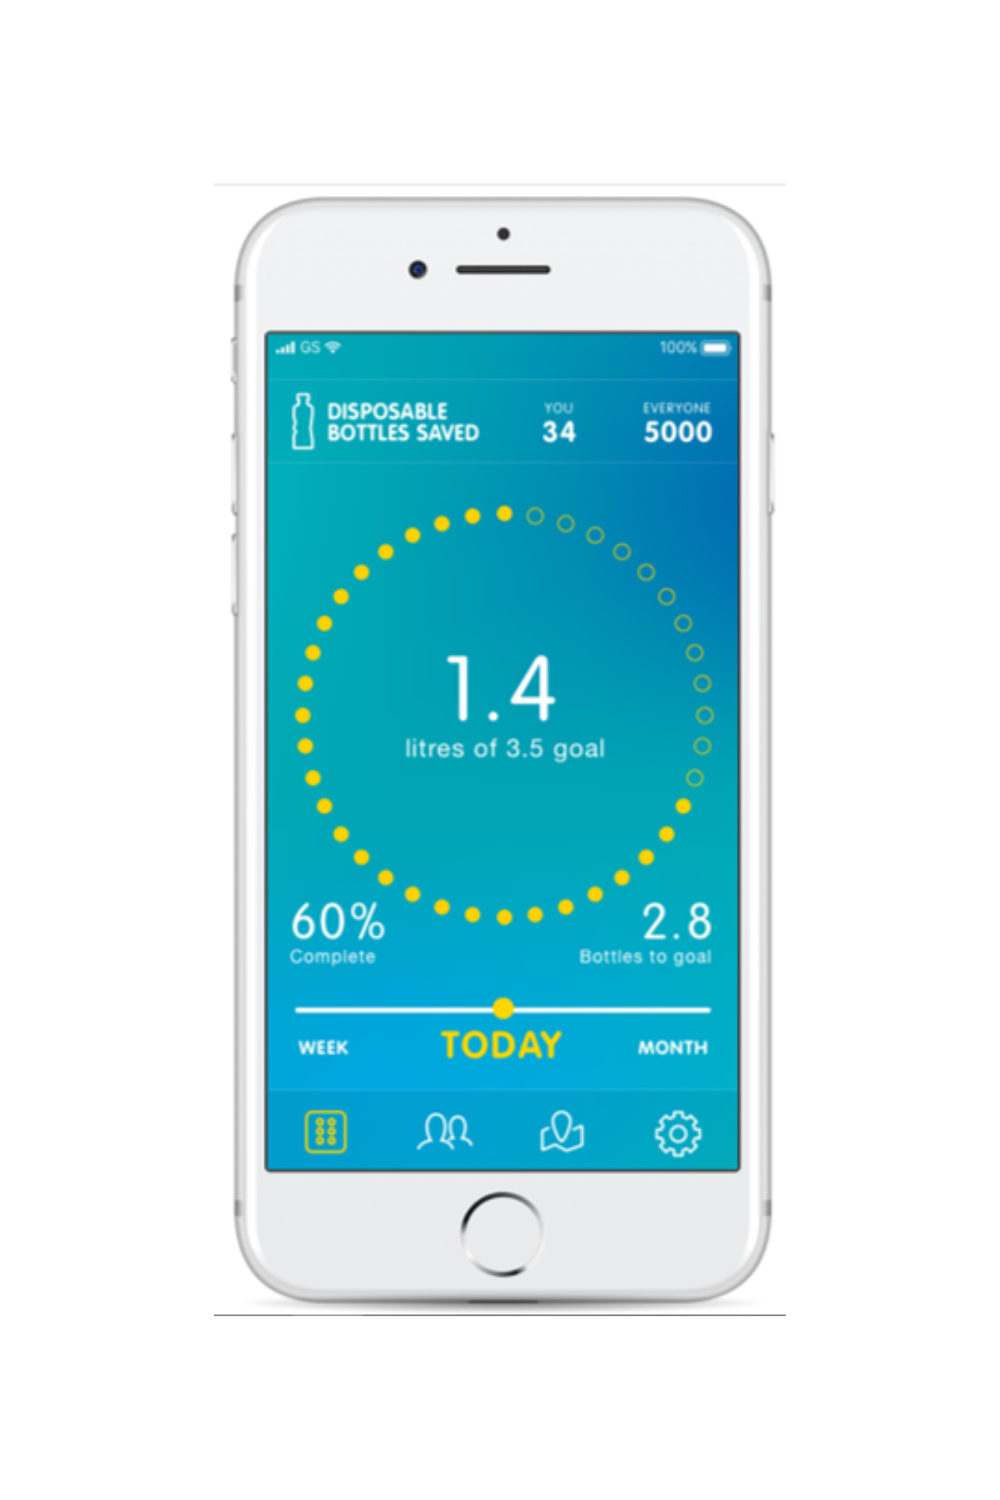 - Sync up your bottle with your water wellness app and set personalised targets to match your health goals.